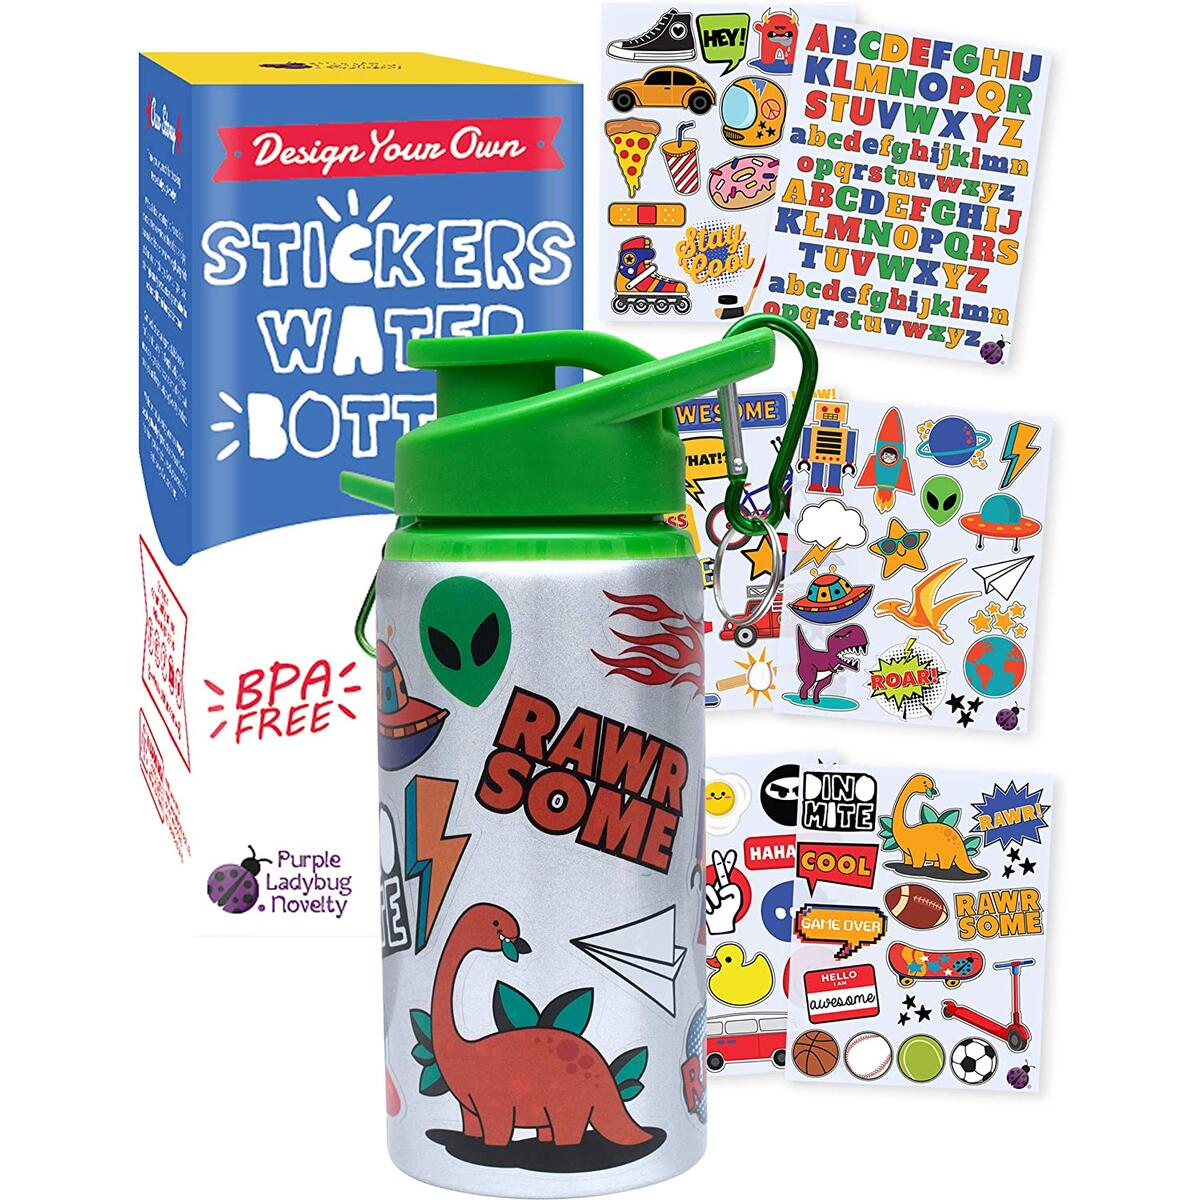 Purple Ladybug Decorate Your Own Water Bottle for Boys with Tons of Fun On-Trend Stickers! BPA Free Kids Water Bottle Craft Kit - Cool and Creative Boy Gift Idea, Fun DIY Kids Arts & Crafts Activity